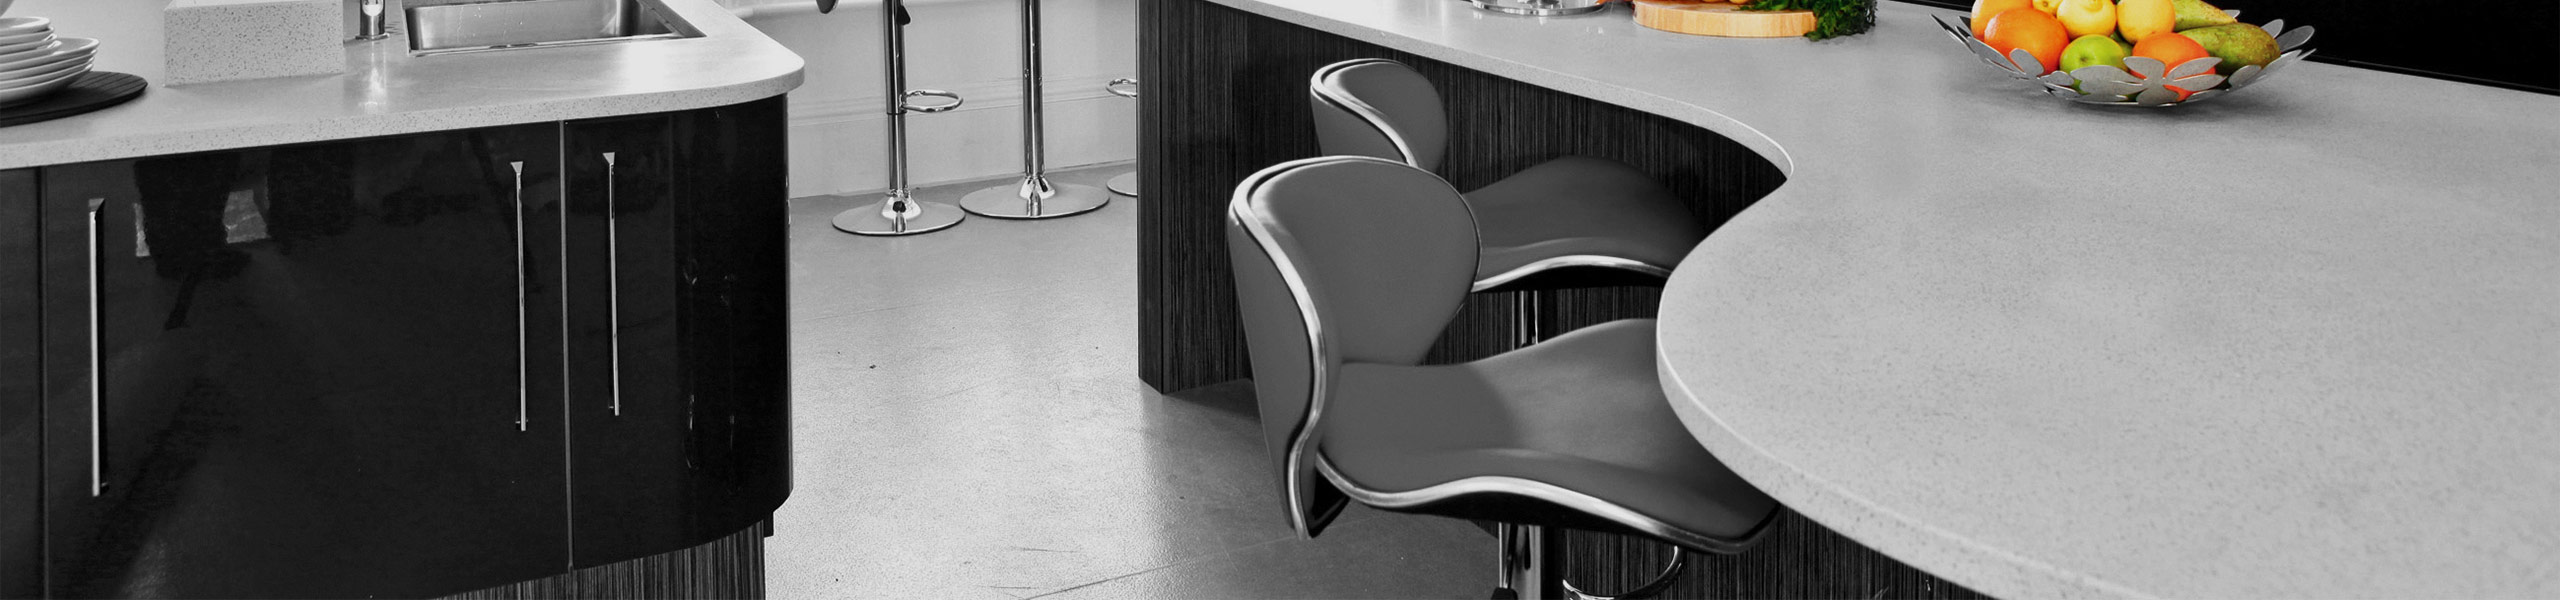 Duo Bar Stool Grey Video Banner